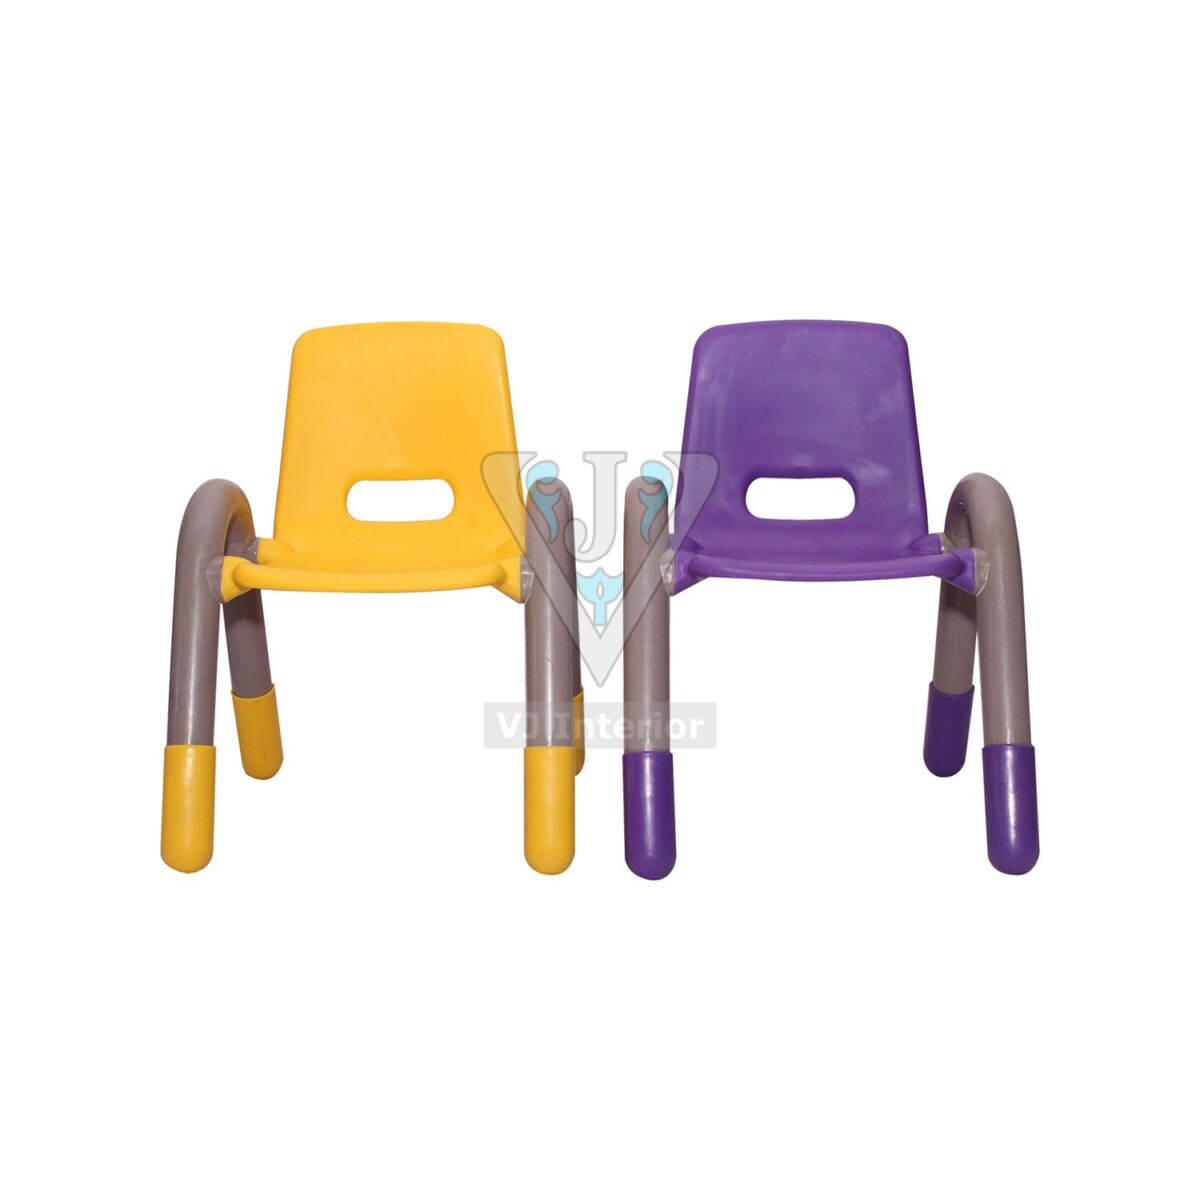 THE VOLVER ENGINEERING PLASTIC KIDS CHAIR YELLOW AND PURPLE PAIR